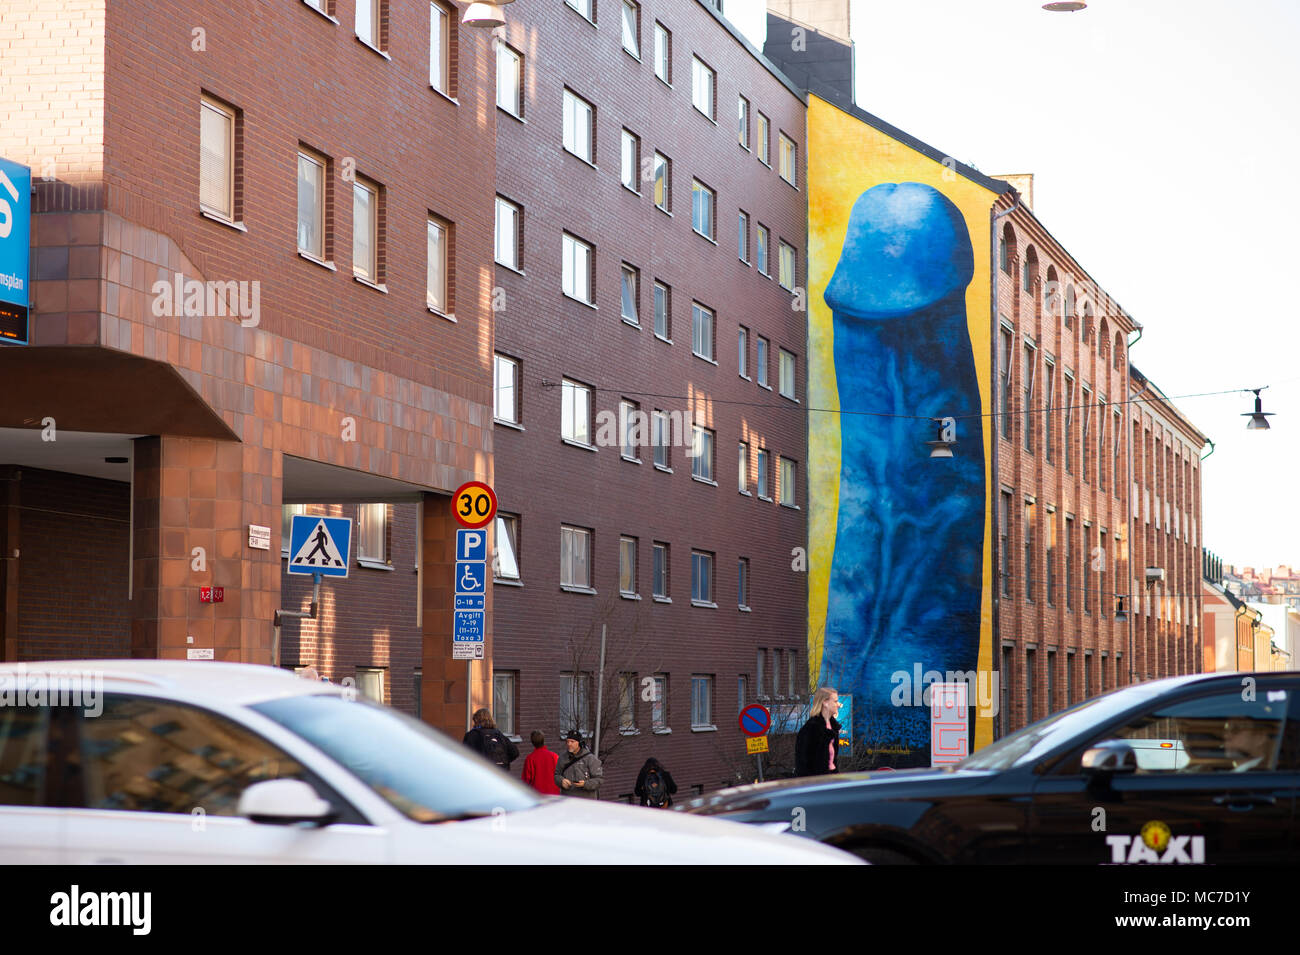 Stockholm, Sweden. 13th Apr, 2018. Controversial penis painting by Carolina Falkholt on house wall in central Stockholm, Sweden.  Credit: Barbro Bergfeldt/Alamy Live News - Stock Image